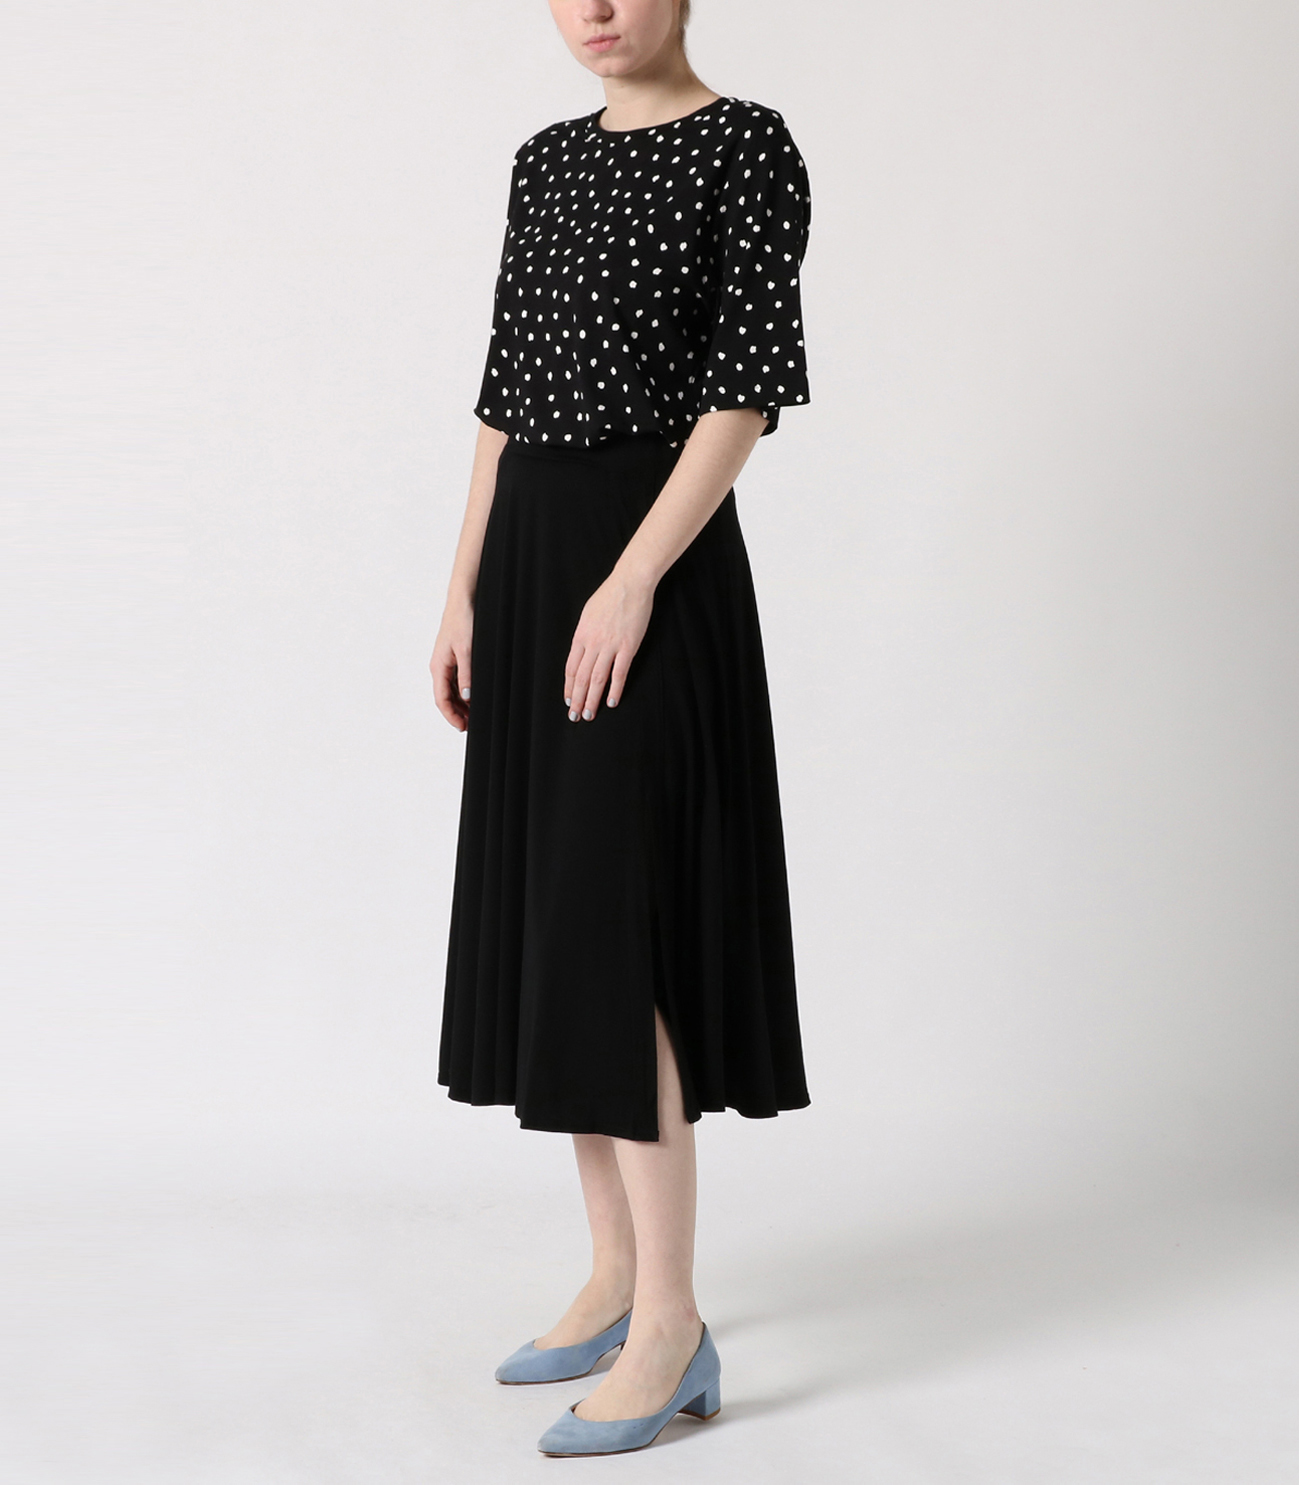 refined jersey flared skirt 詳細画像 black 6